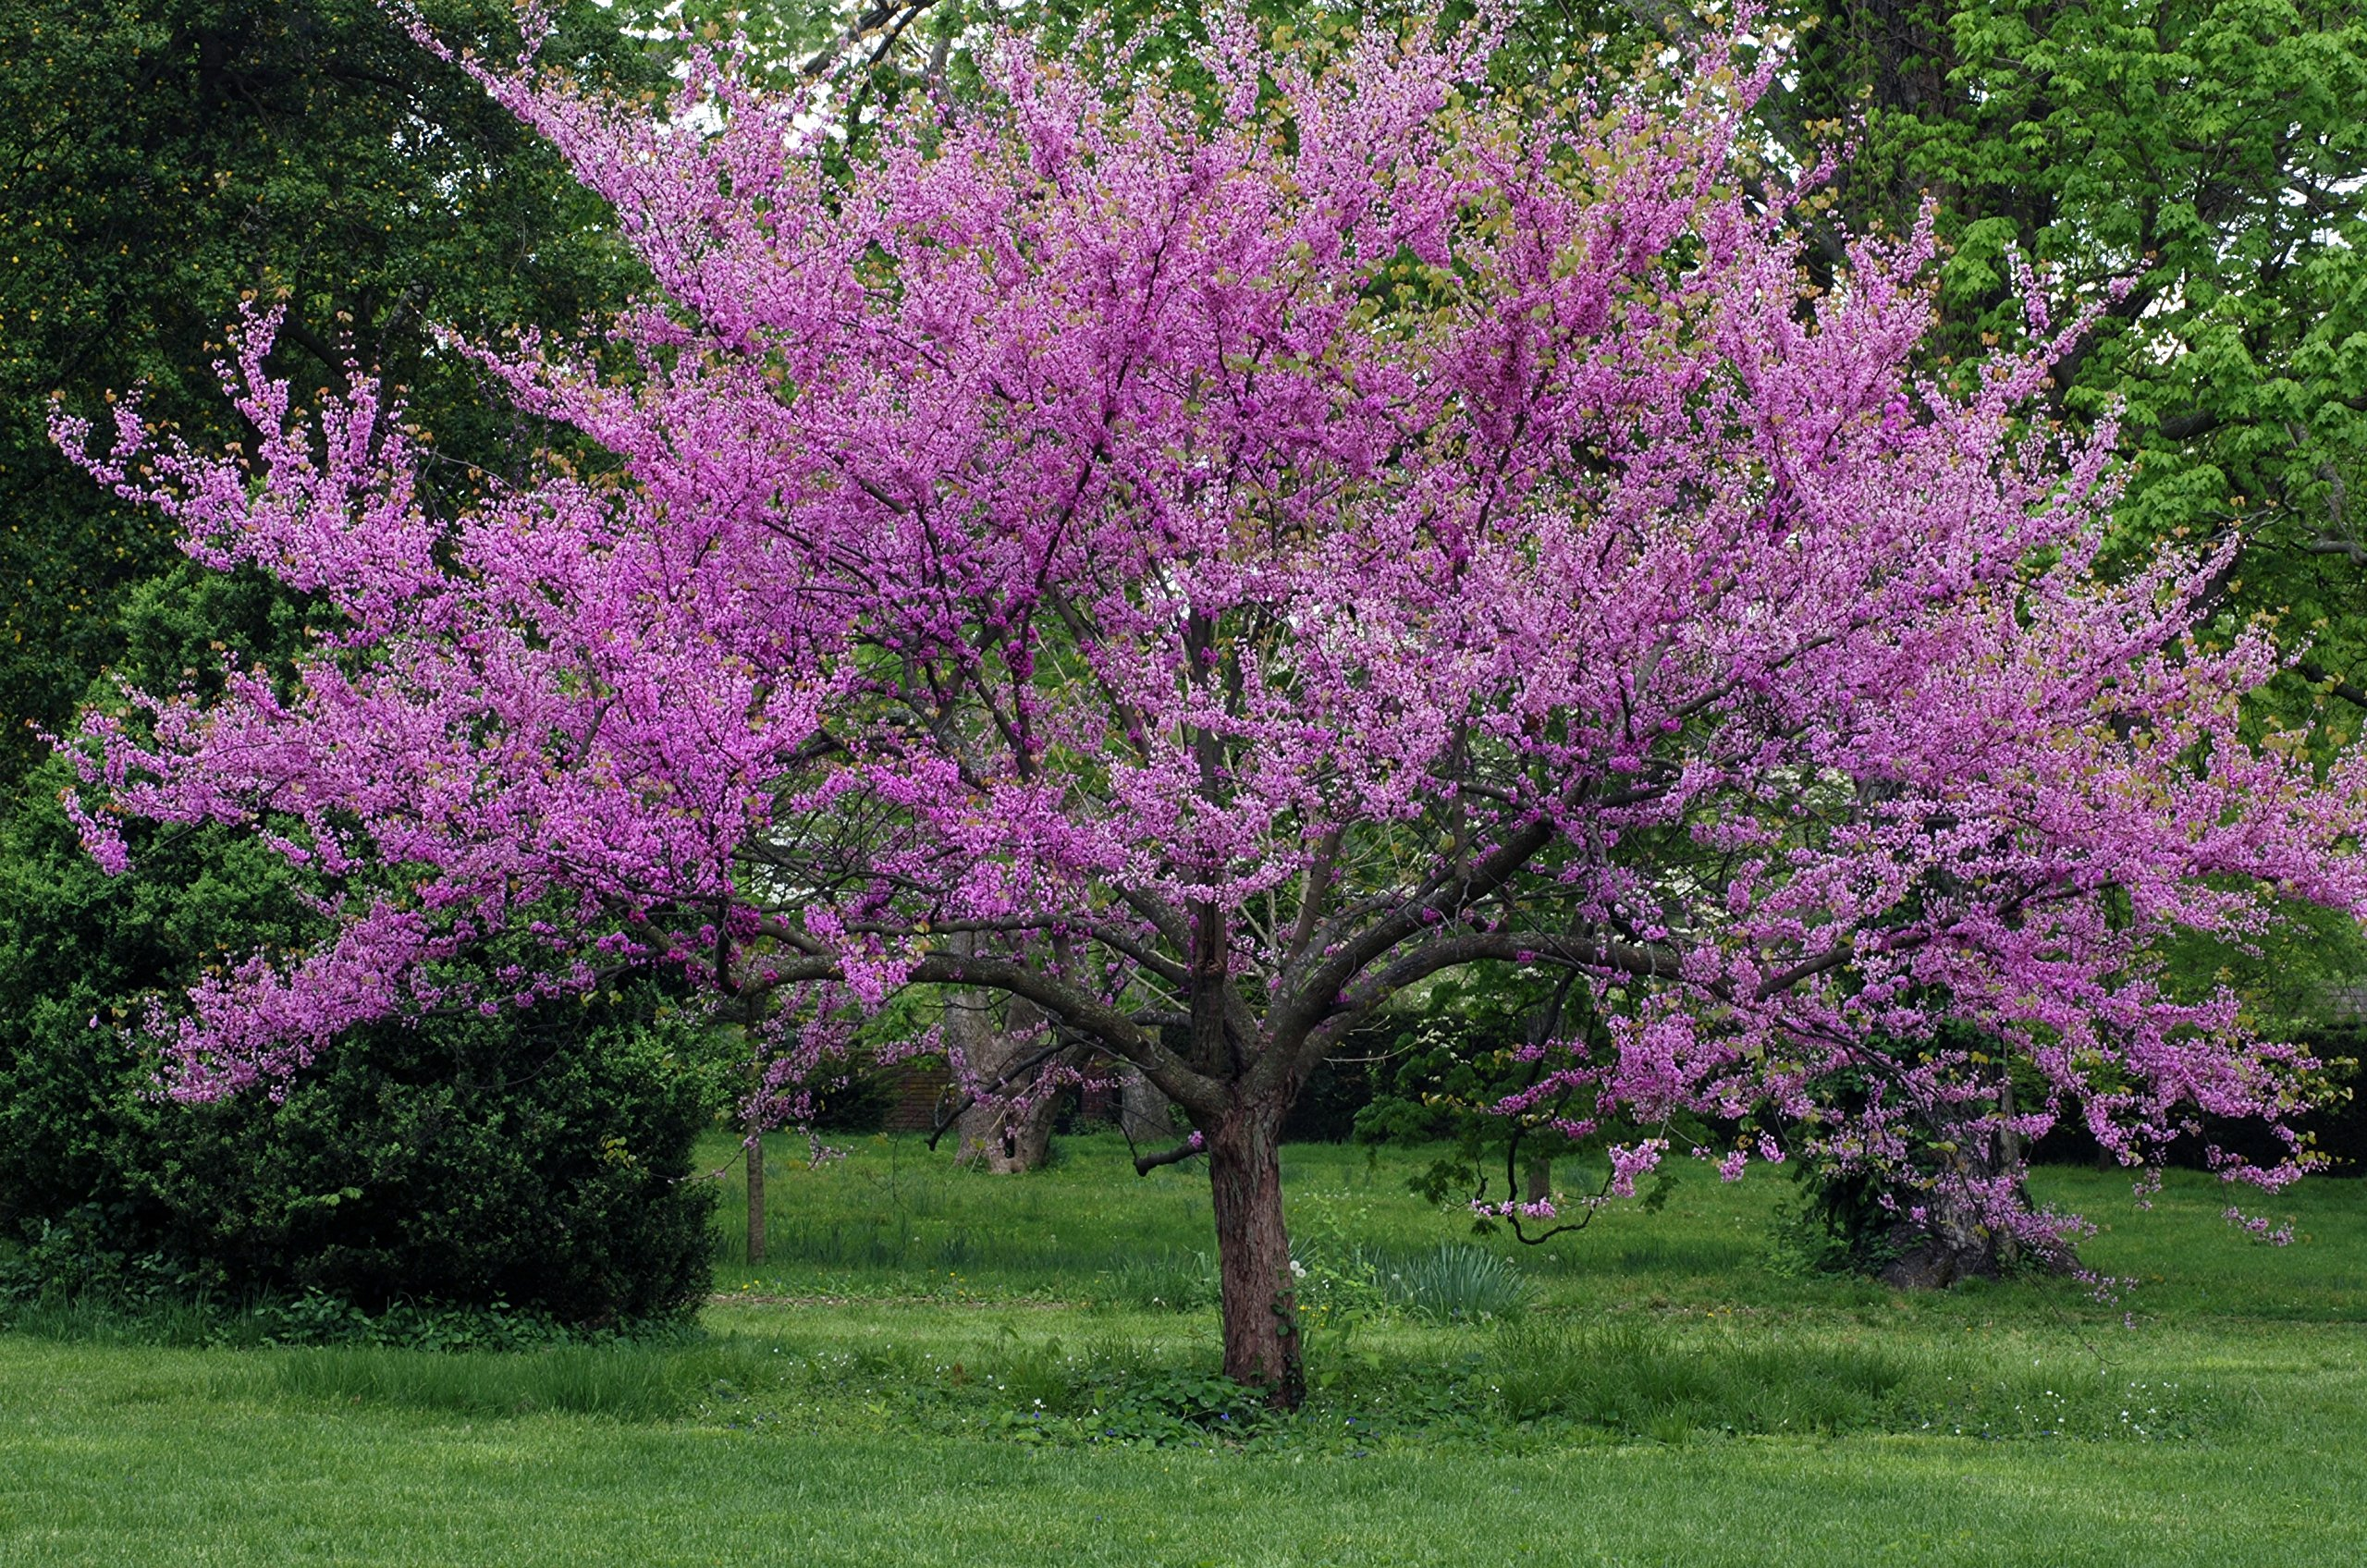 Eastern Redbud Tree - Live Plant Shipped 2-3 Feet Tall (No California)